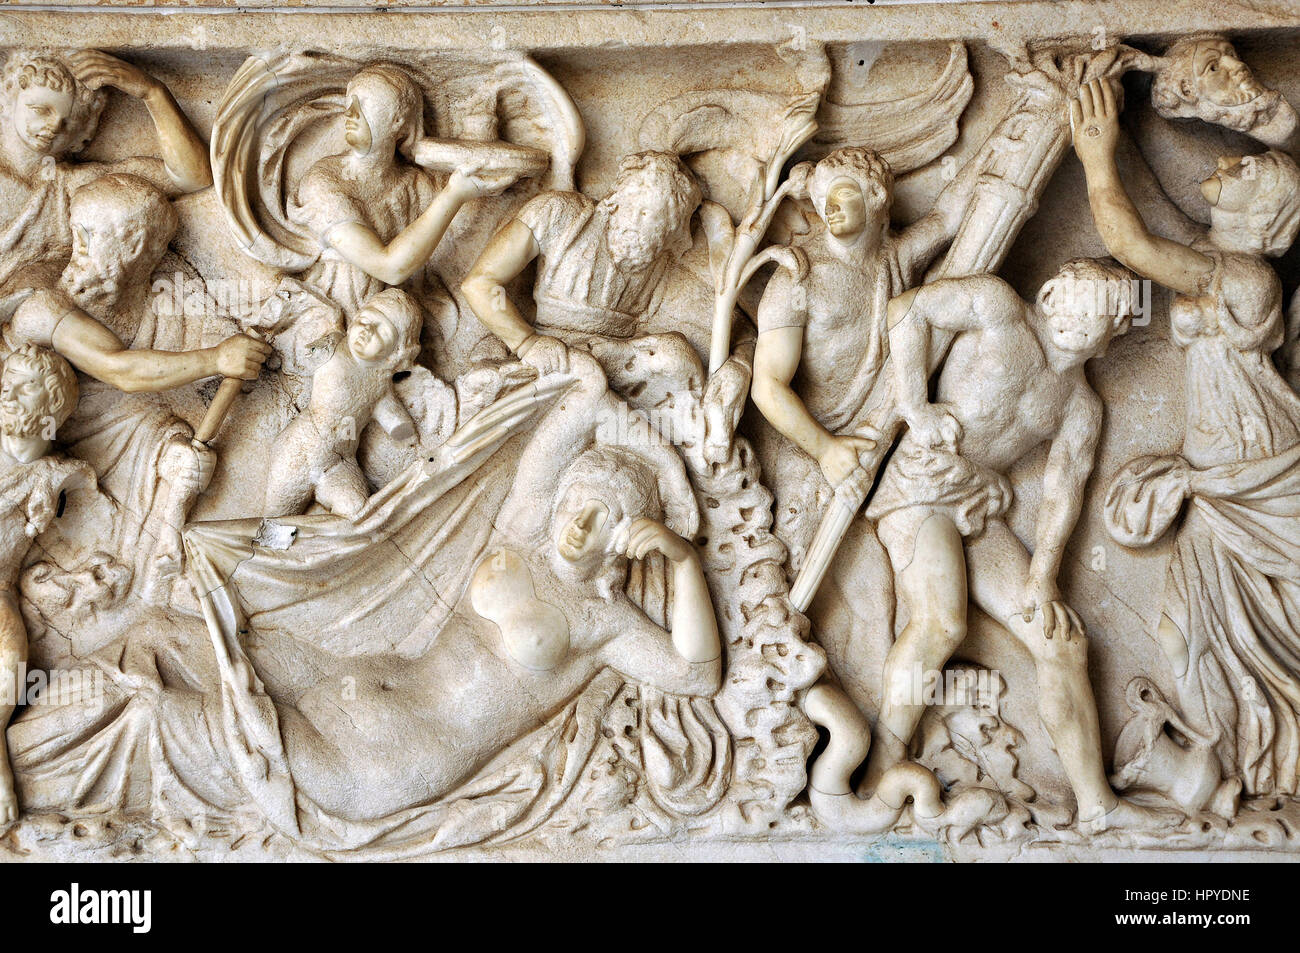 Bas-relief and sculpture details in stone of Roman Gods and ...